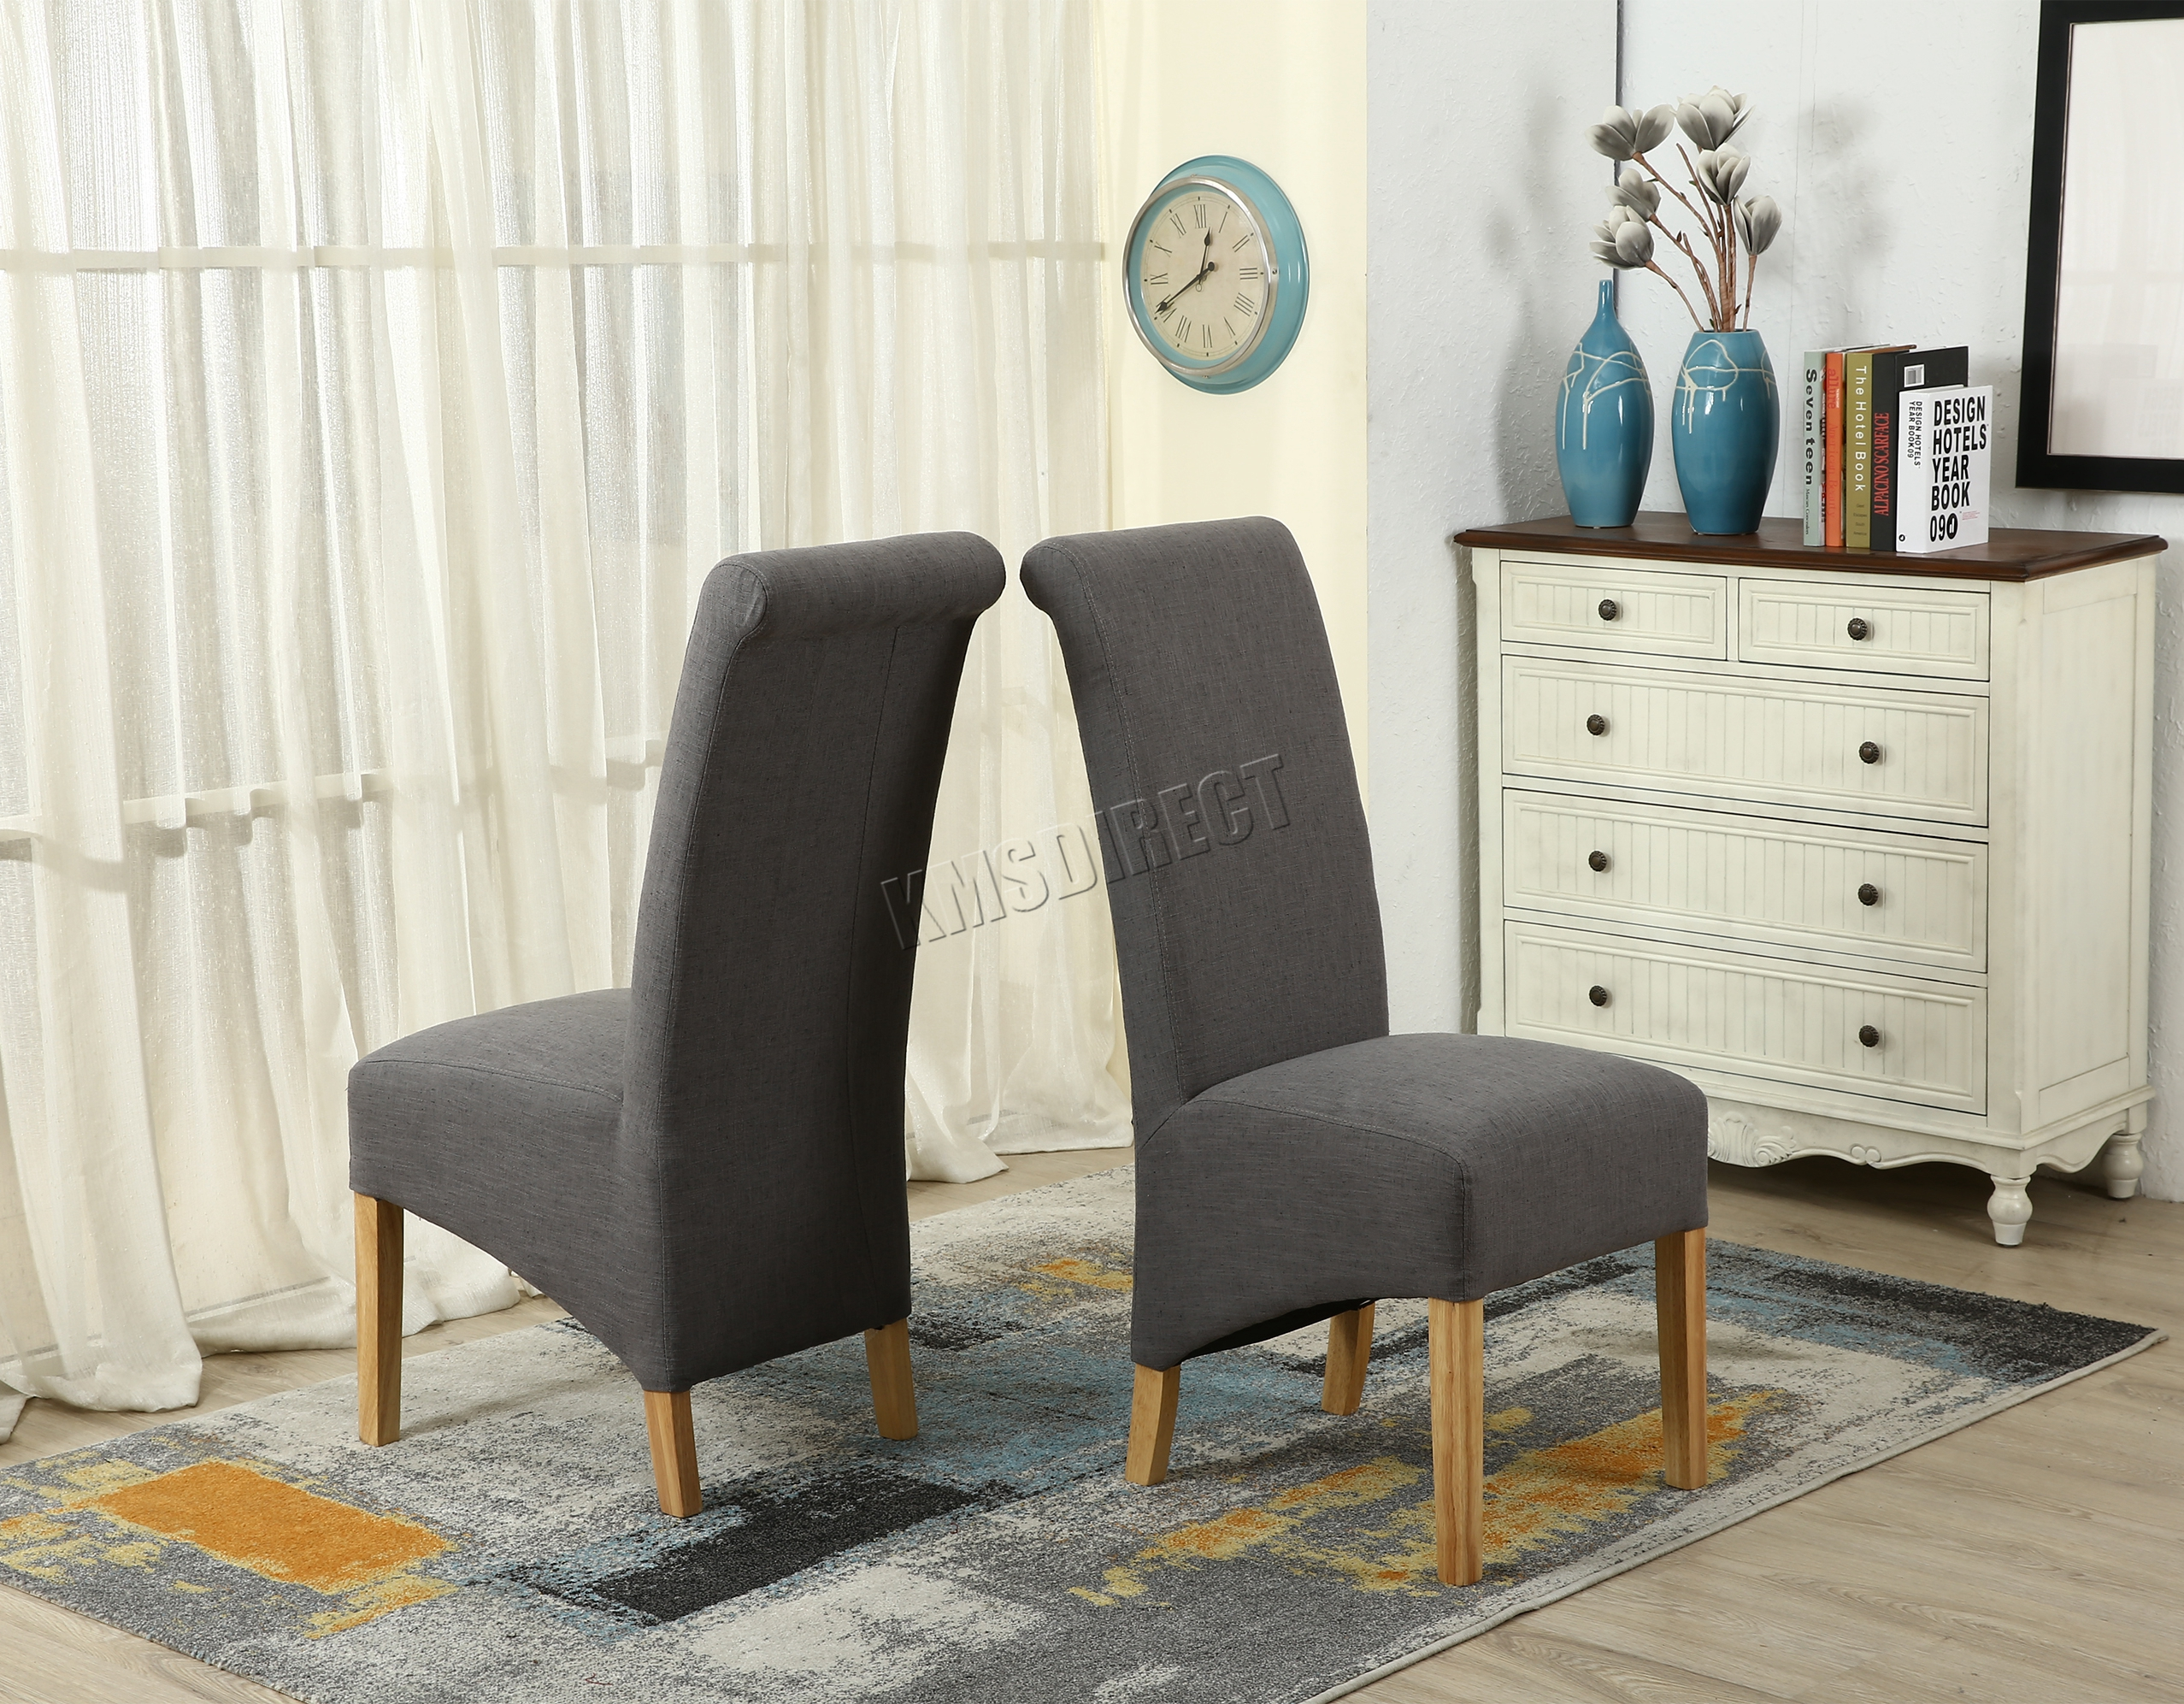 Sentinel WestWood Grey Linen Fabric Dining Chairs Scroll High Back Springed  Seat New X2